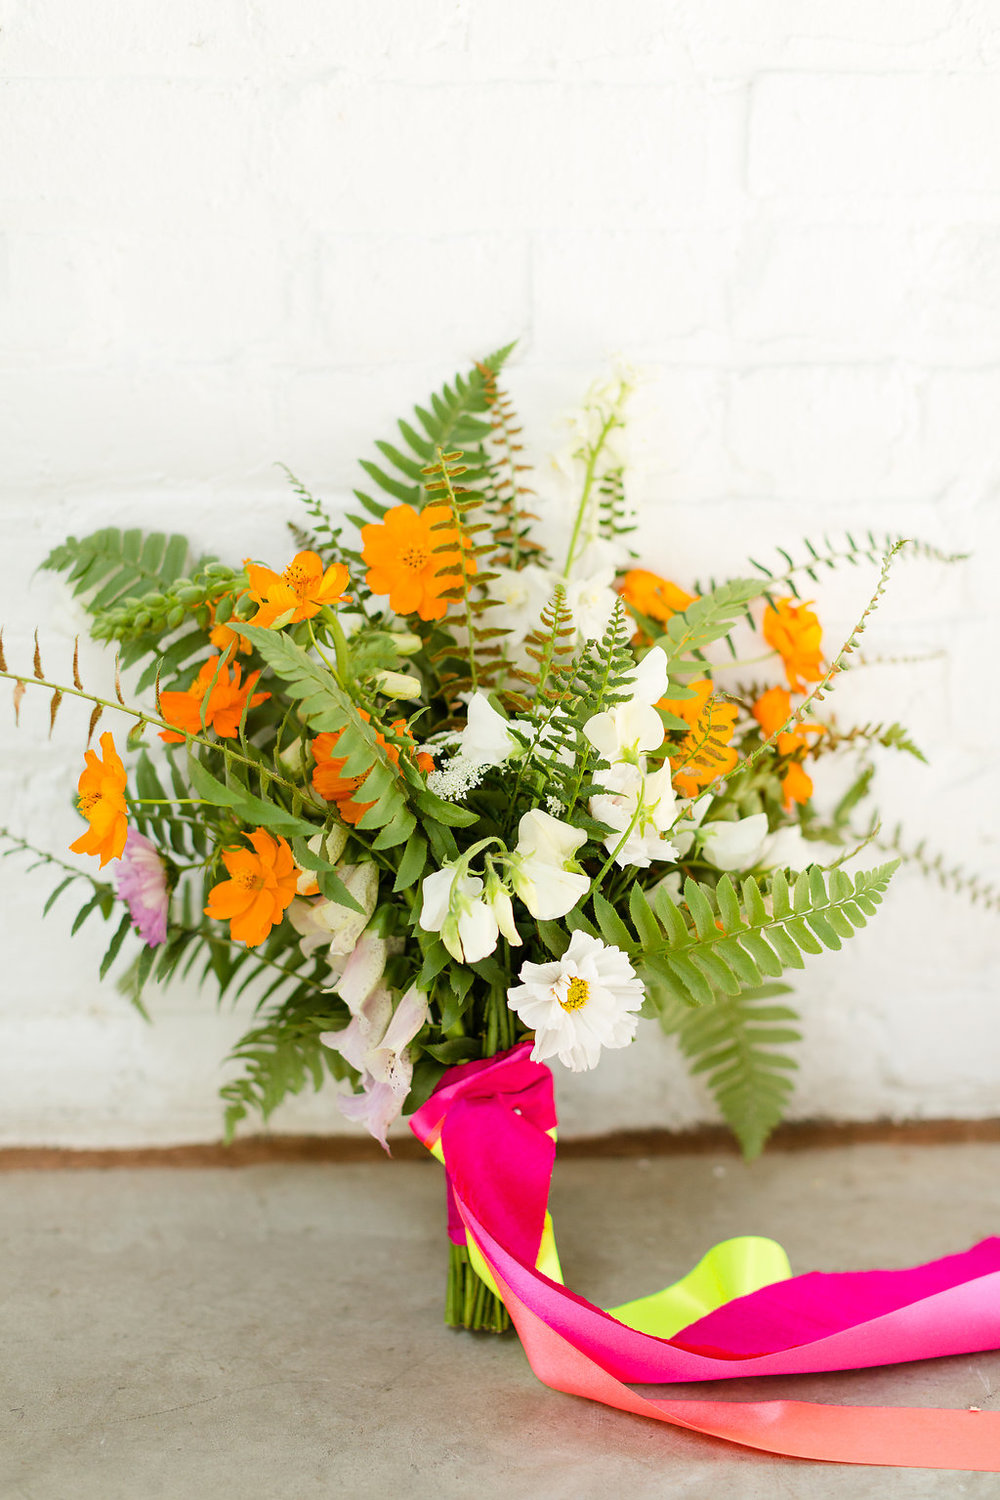 Neon Wedding Bouquet with Ferns by Taproot Flowers / photo by Jessica Haley Photography